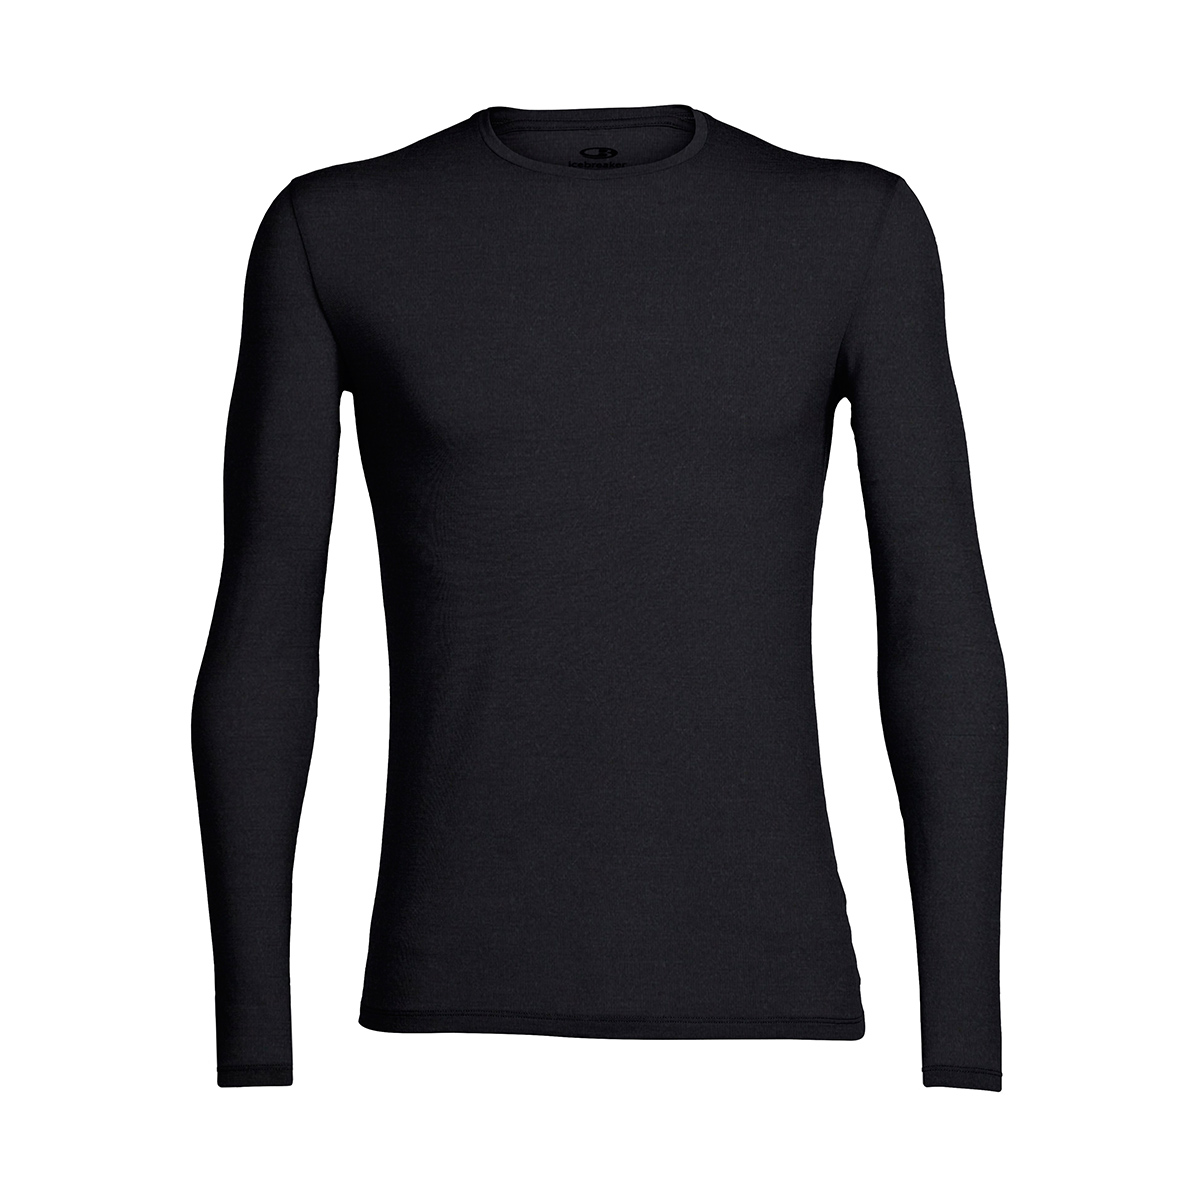 Icebreaker Merino wool long sleeve T-shirt 103032 sports, leisure, fitness, quick drying and skin-friendly 150gm